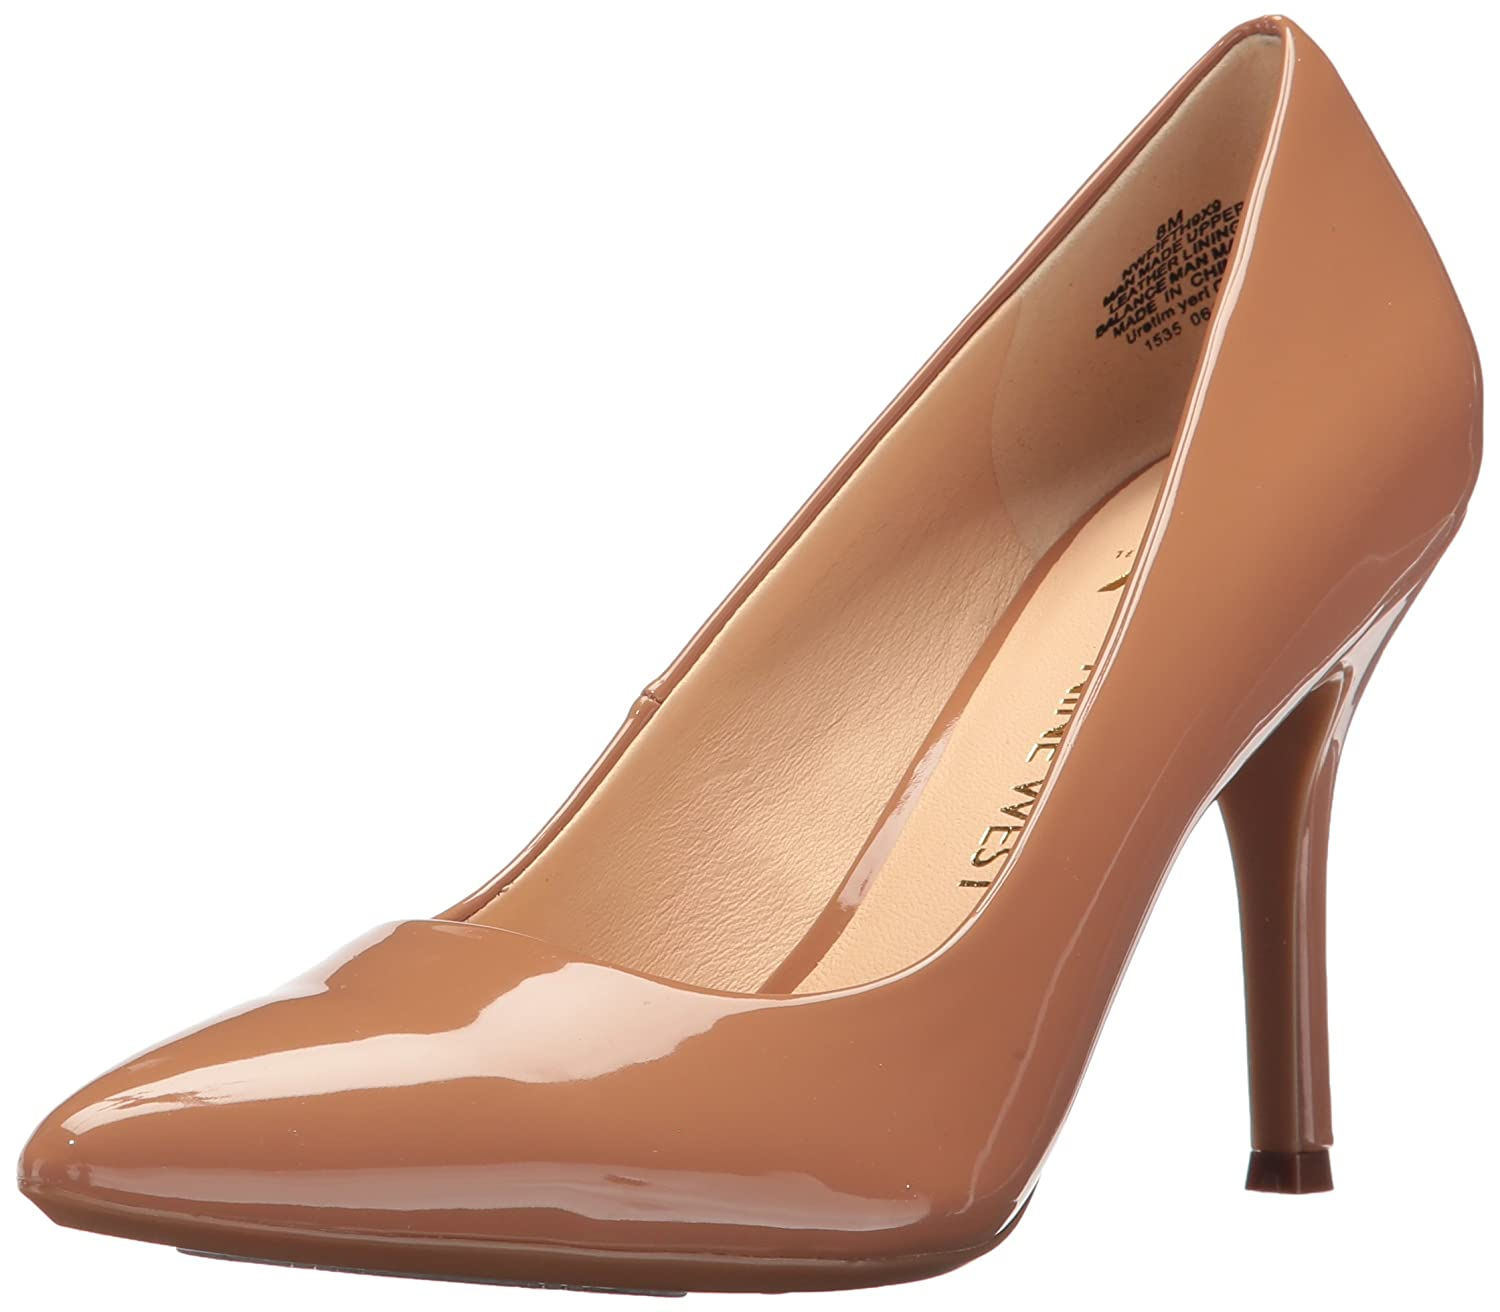 Nine West Women's FIFTH9X Fifth Pointy Toe Pumps B01MXTOLFQ 8 B(M) US|Dark Natural Synthetic